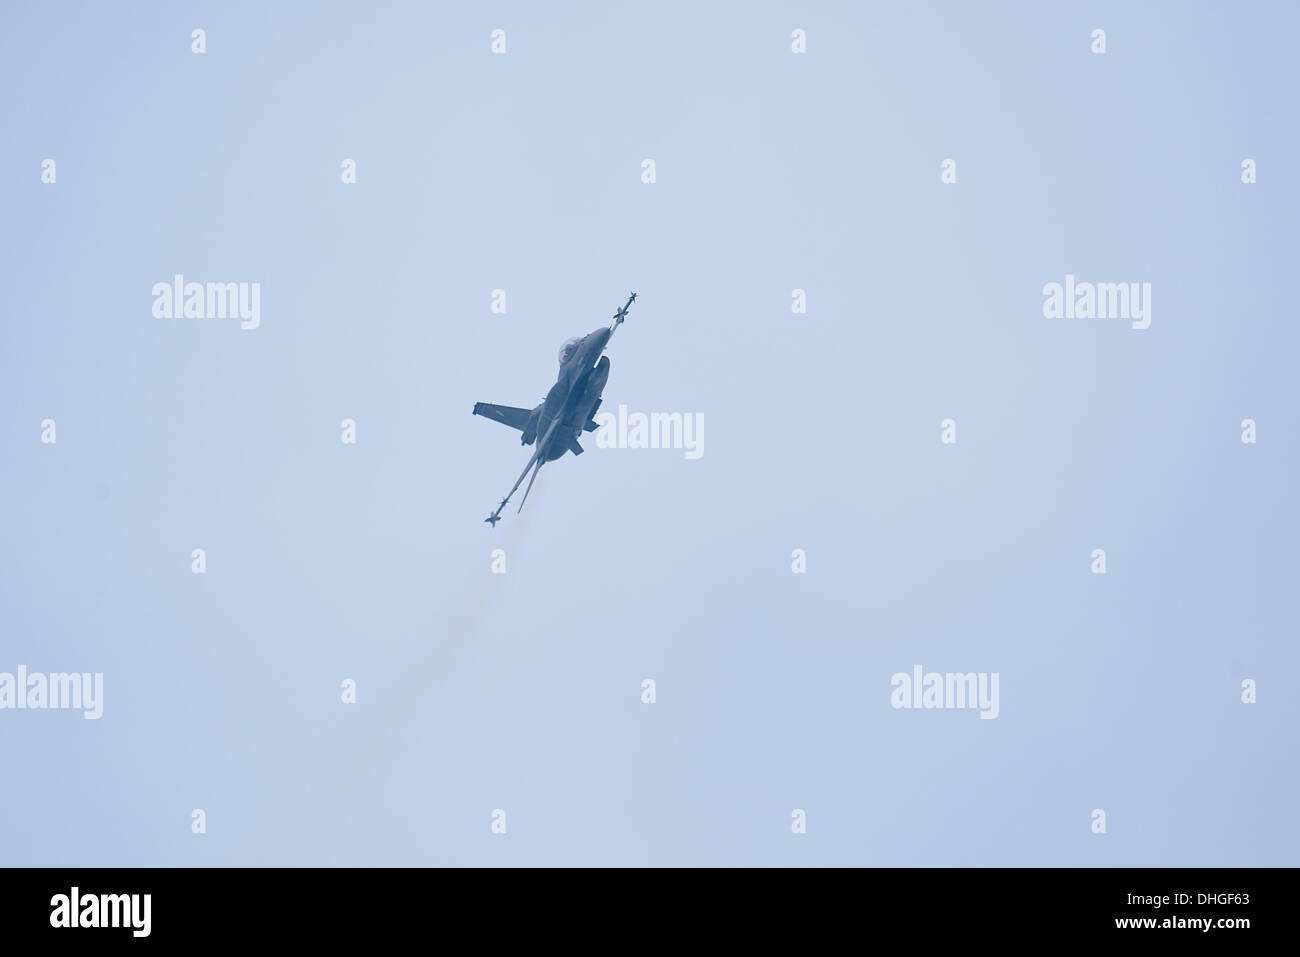 The F-16C during a high G maneuver over Thessaloniki. Due to the annual celebration of the Hellenic Air Force every November, an F-16 Block 52+ belonging to the 'Zeus' acrobat team made an air show at Thessaloniki seaside area. The purpose of the demonstration is people come closer with the Air Force - Stock Image